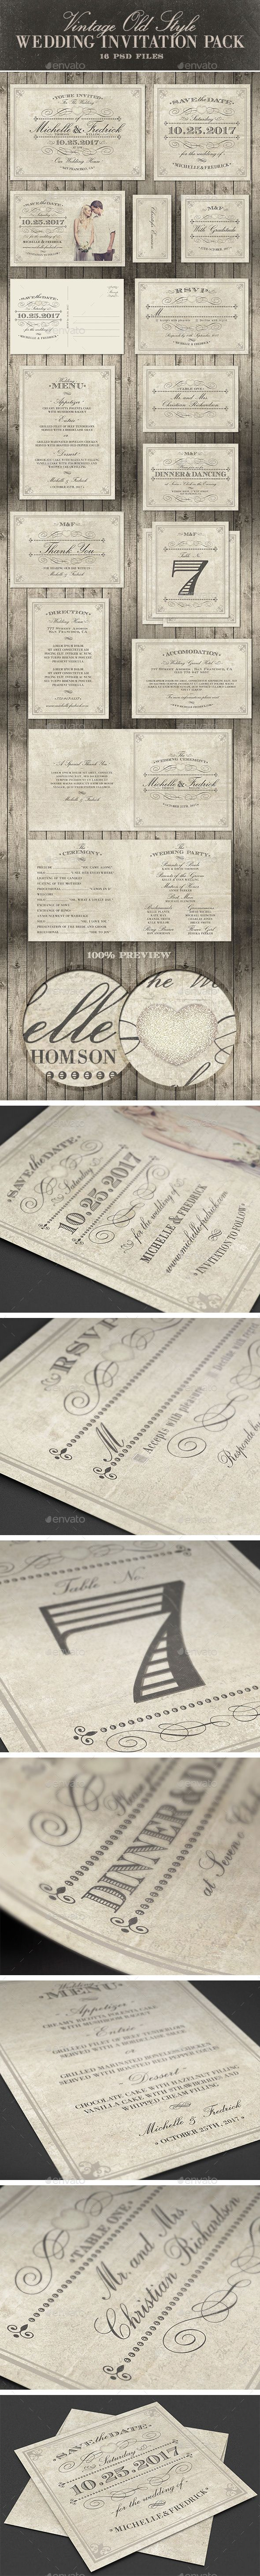 wedding reception directions card%0A Old style wedding invitation pack   vintage Visit and download here https